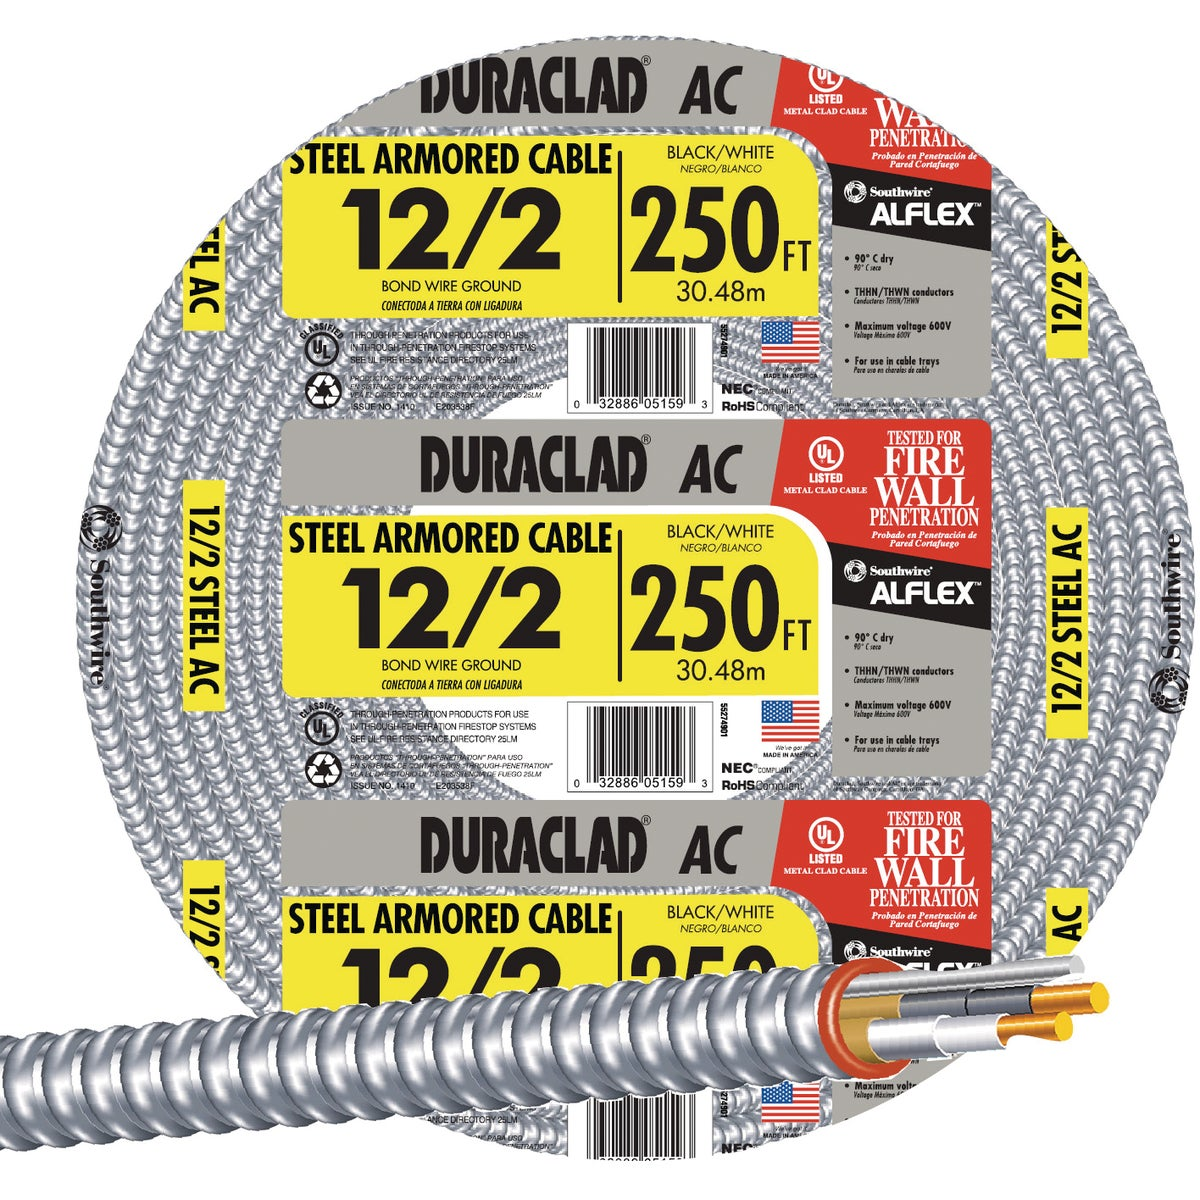 250' 12/2 STL ARMR CABLE - 55274901 by Southwire Company